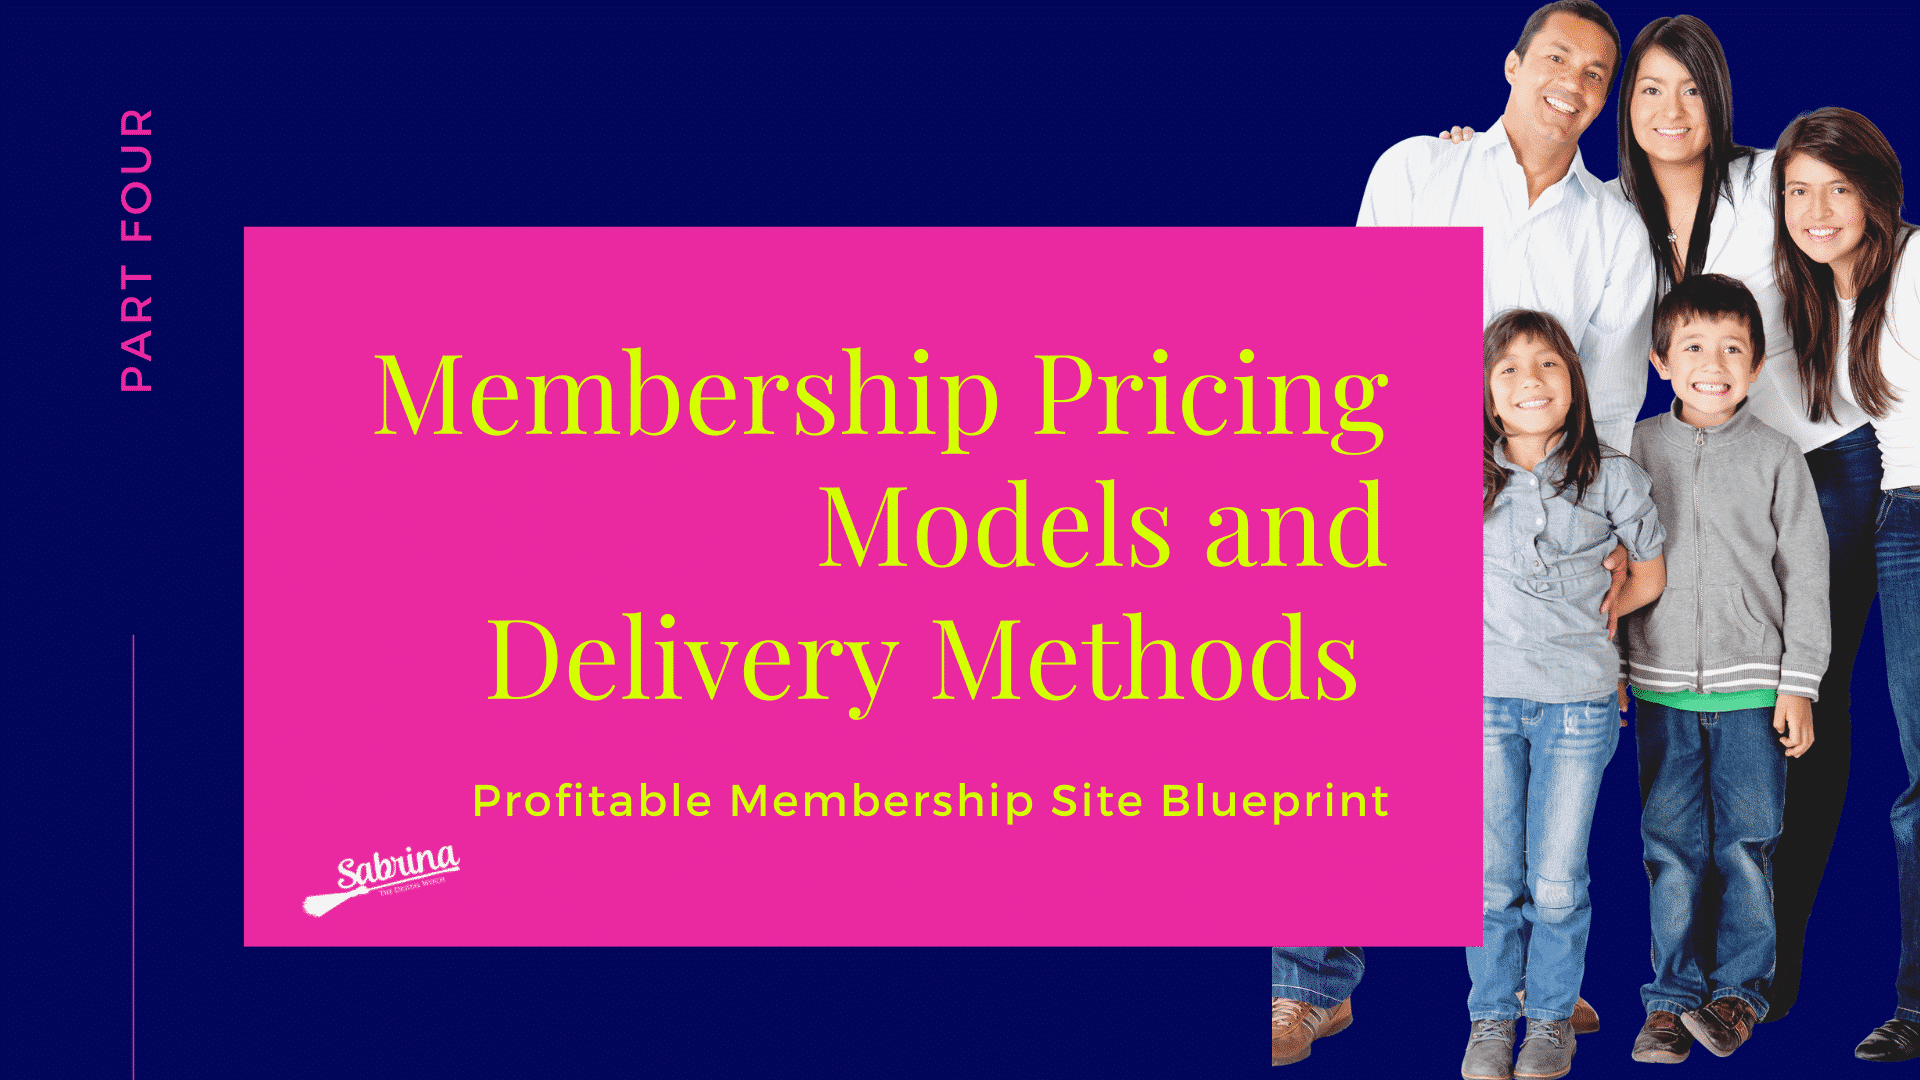 You are currently viewing Membership Pricing Models and Delivery Methods